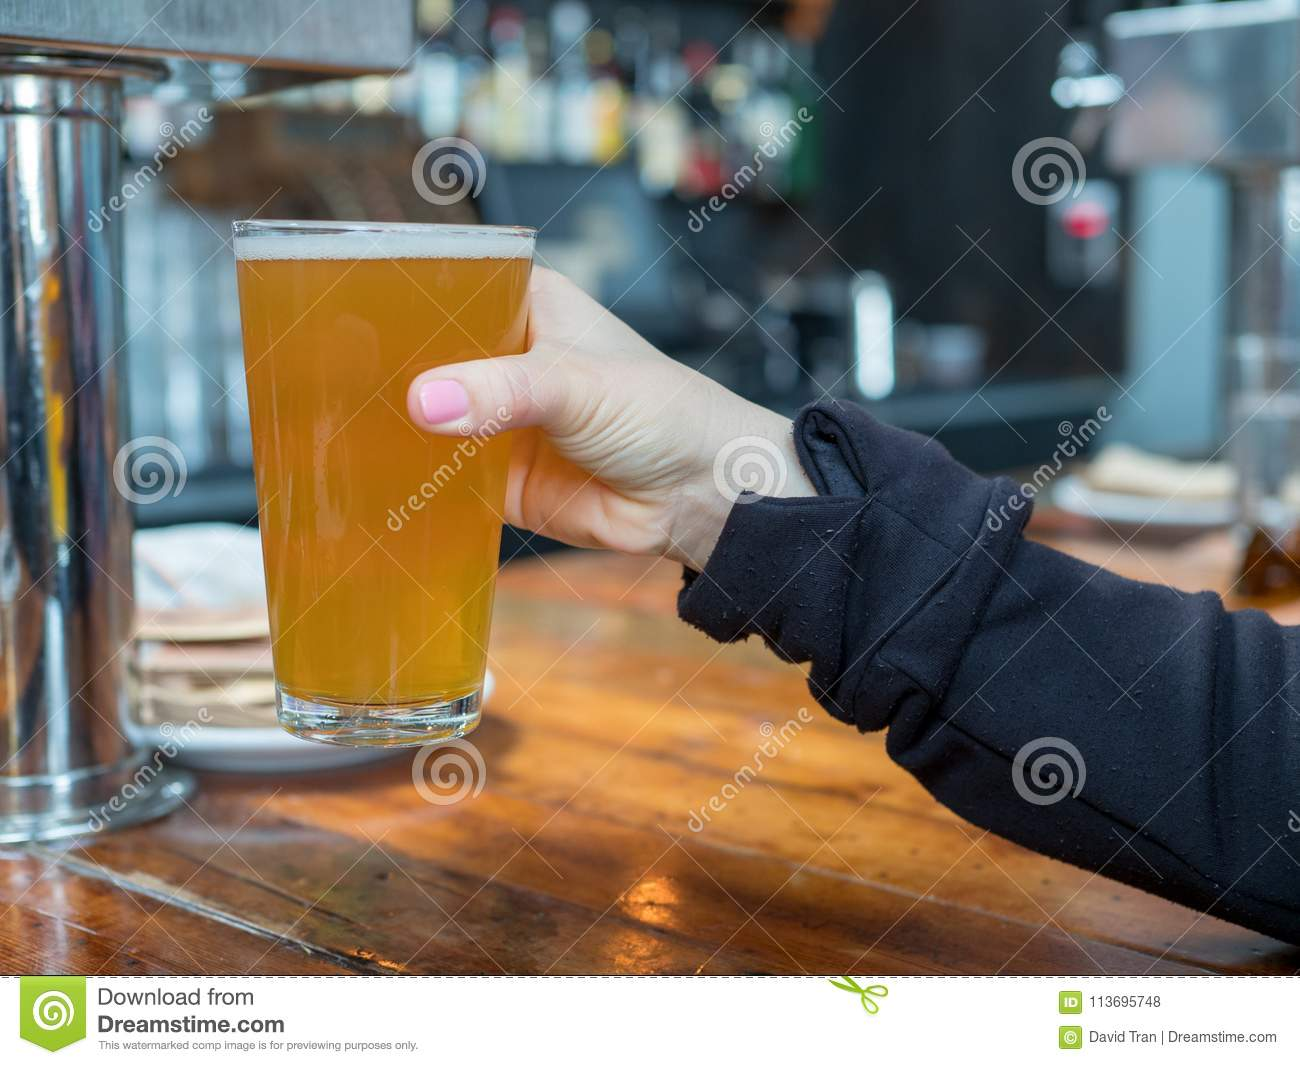 Woman lifting up pint glass of IPA beer in a bar